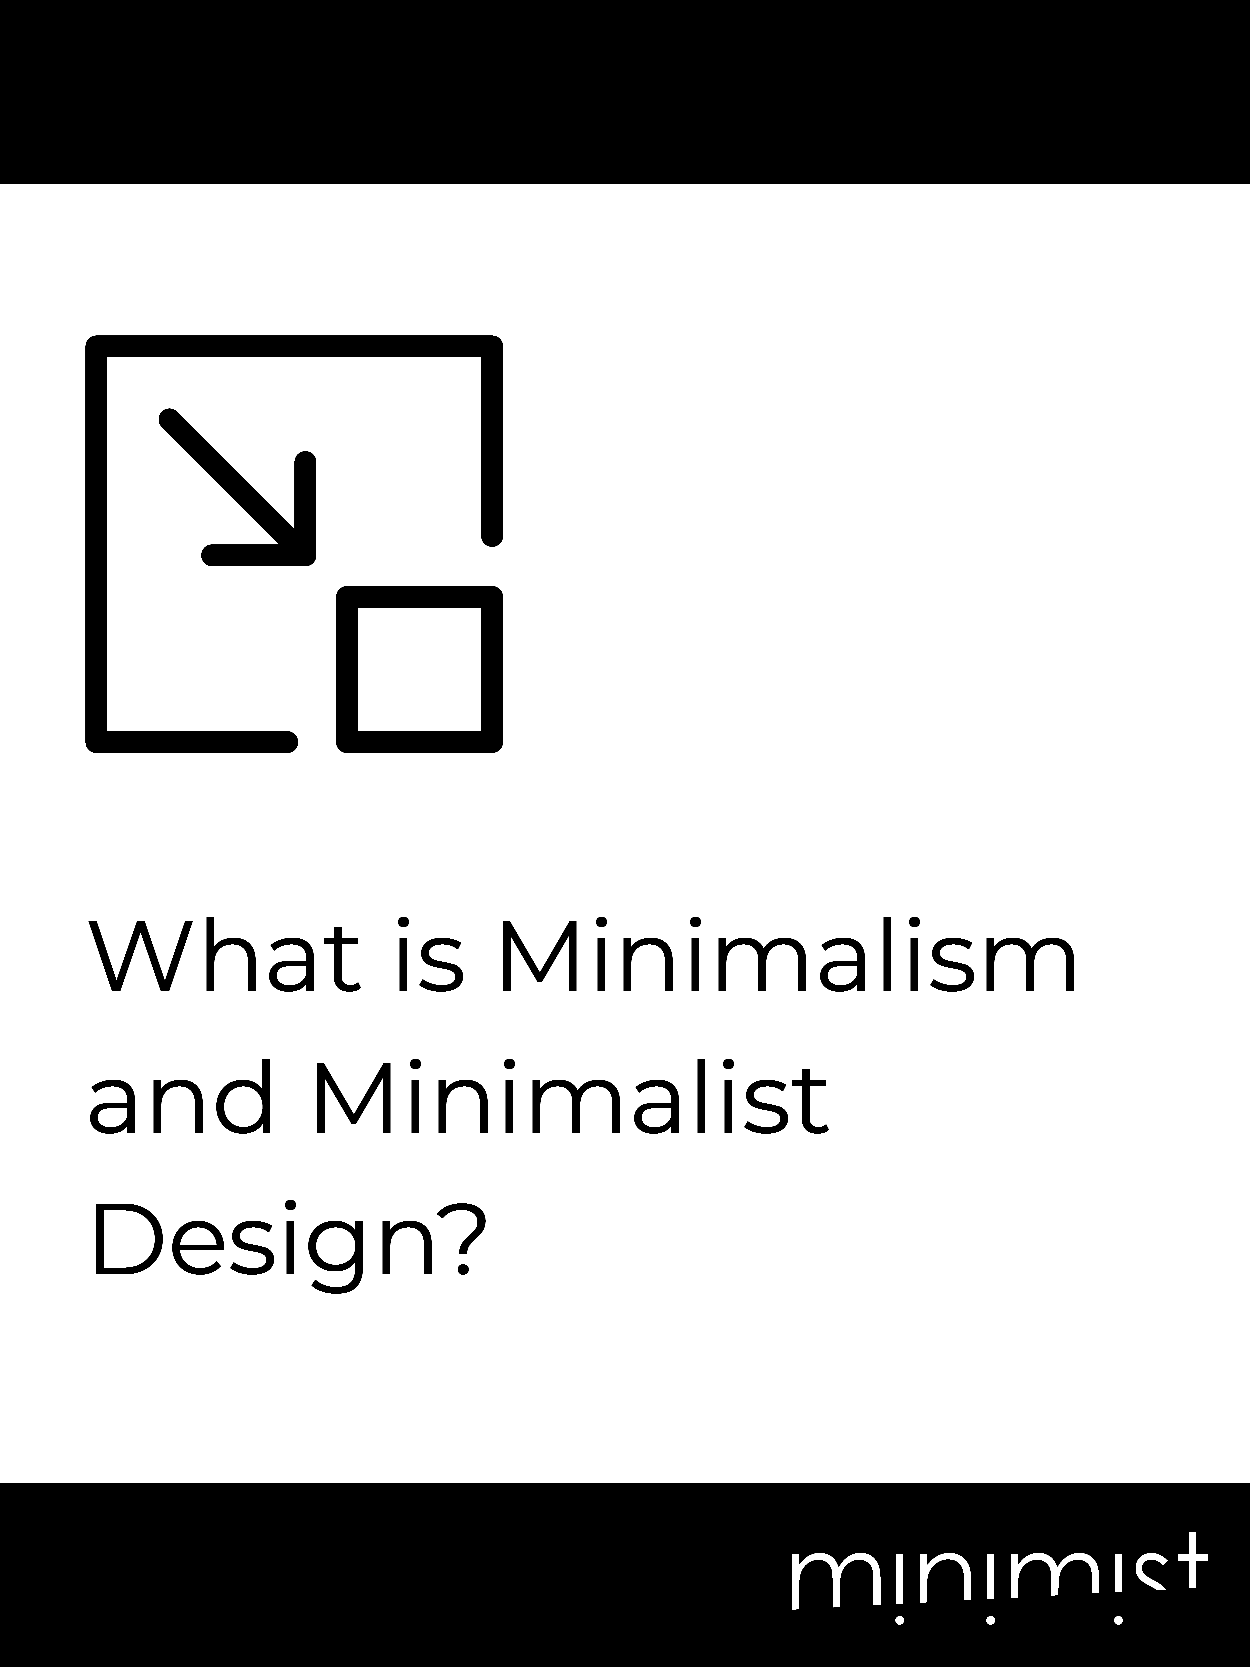 What is Minimalism and Minimalist Design?